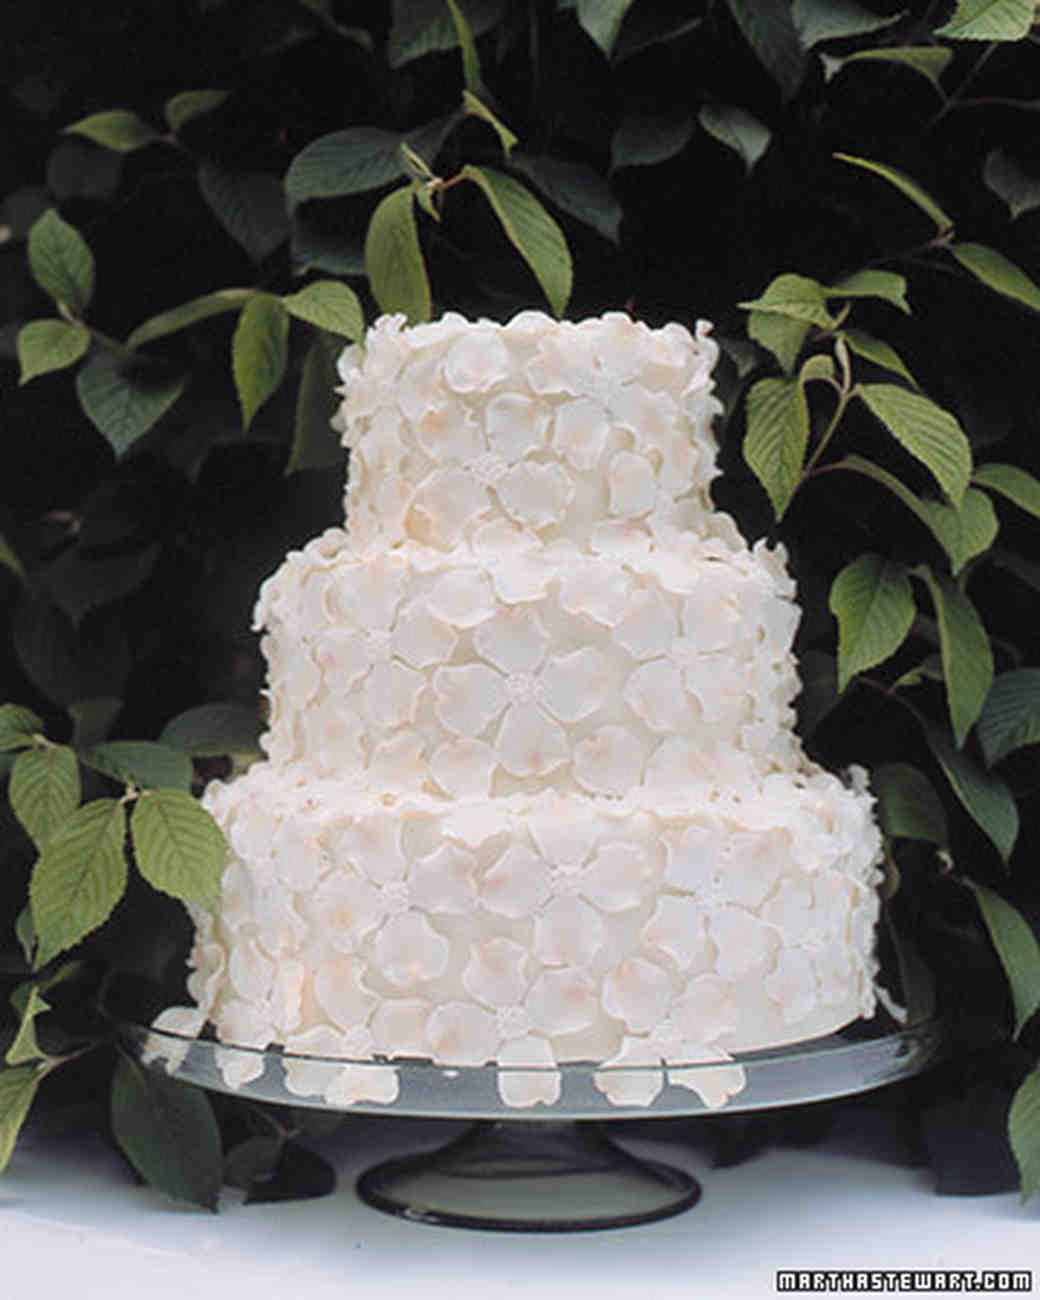 wed_ws97_couturecakes_06.jpg